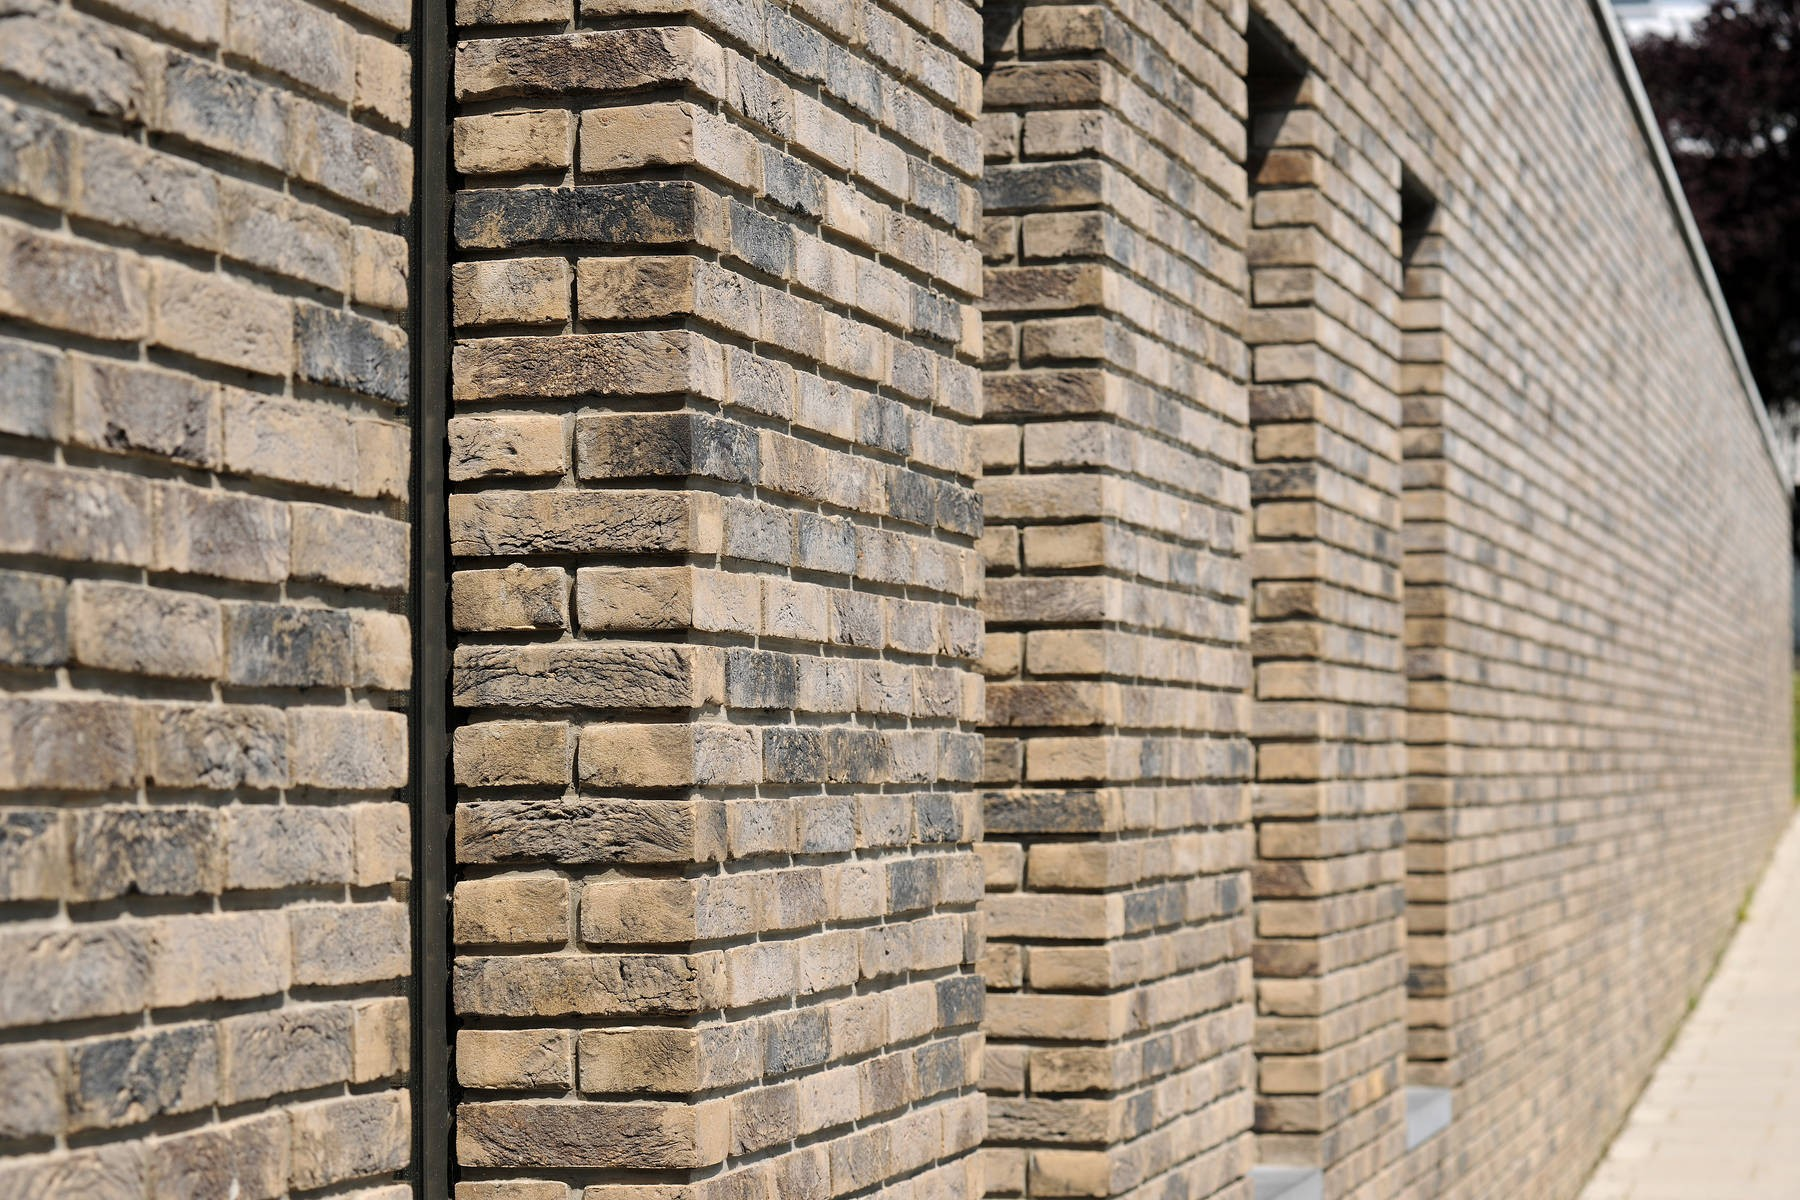 Ceramic bricks